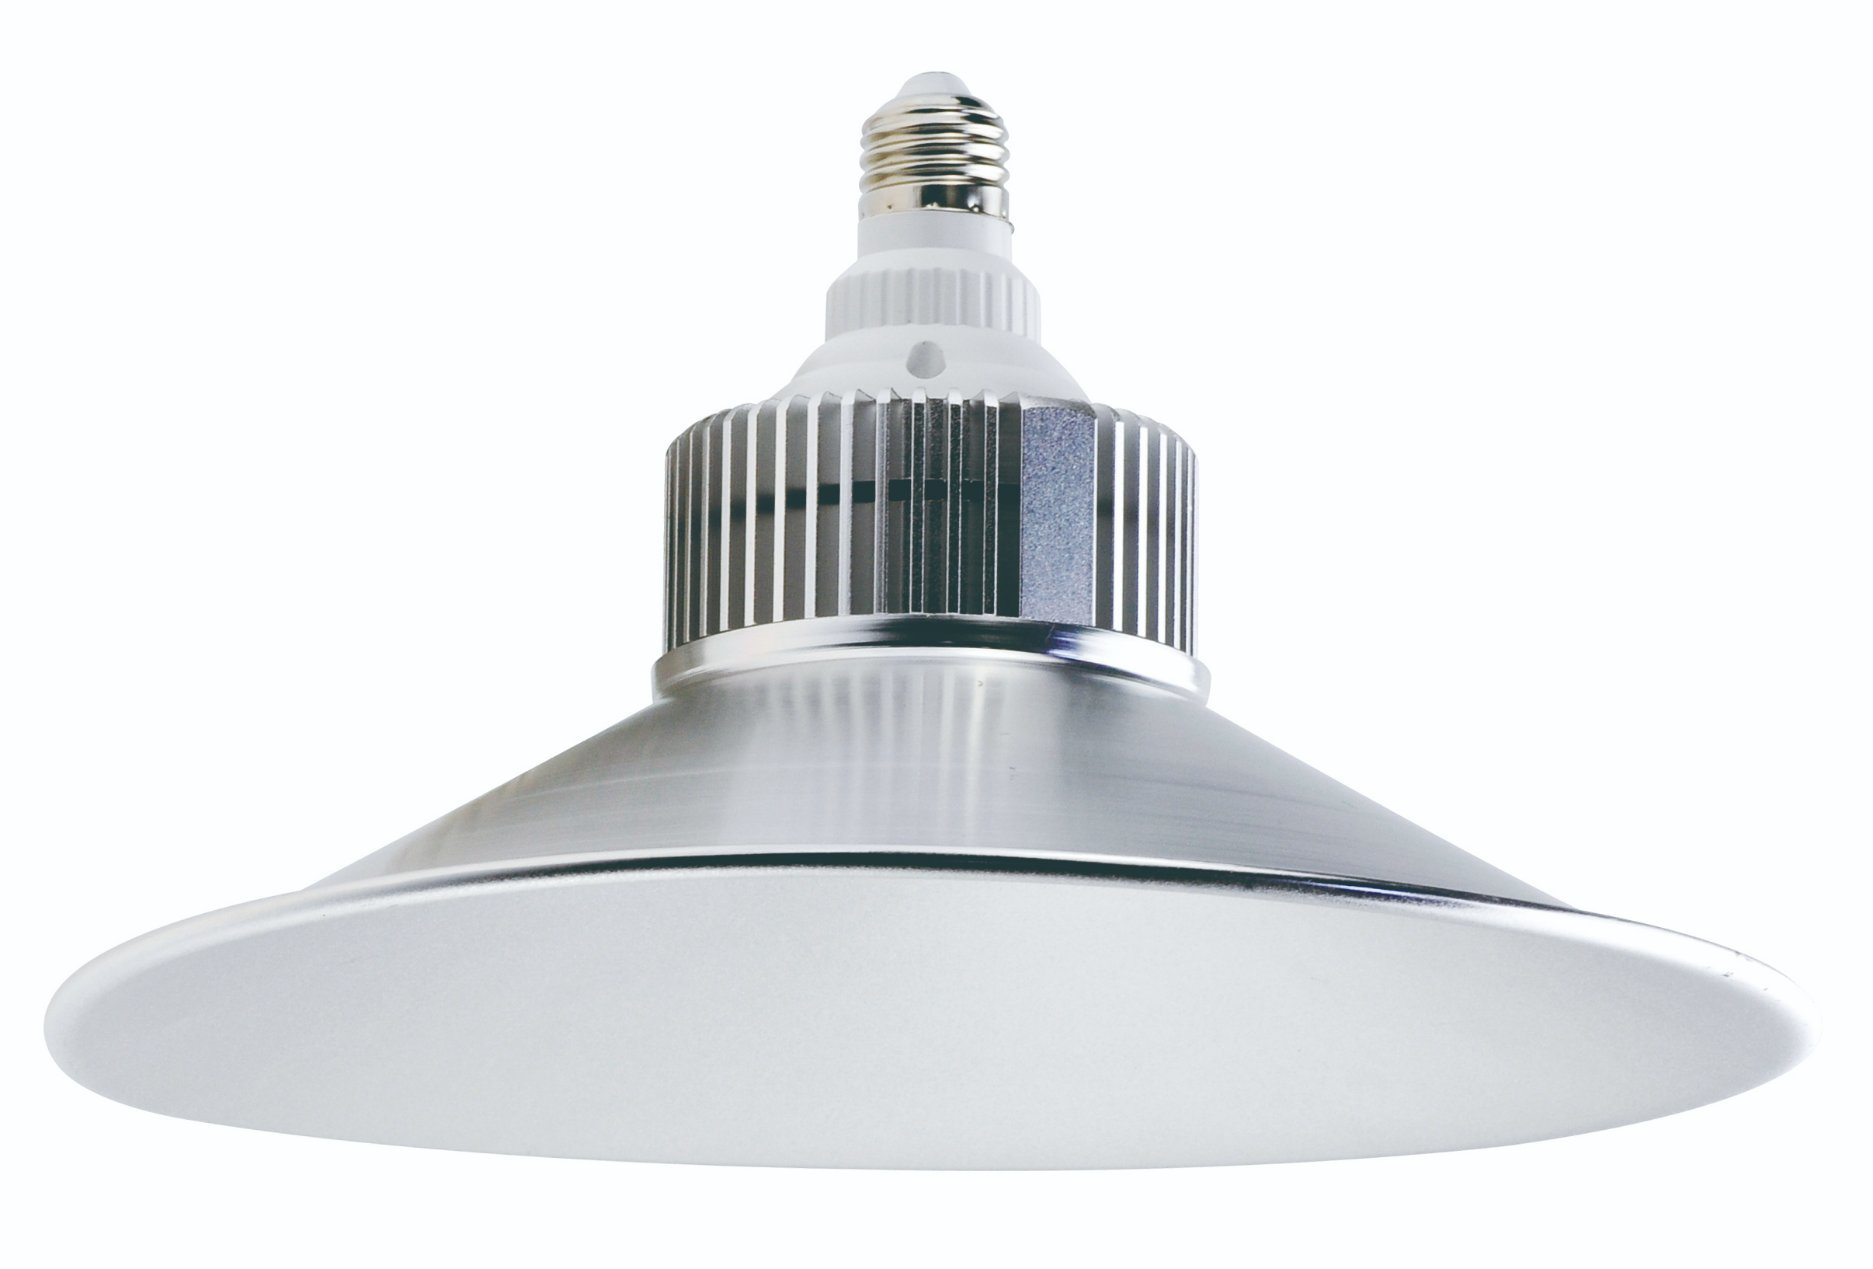 50W 70W 100W 150W LED High Bay Light E27 Industrial Factory Warehouse Commercial